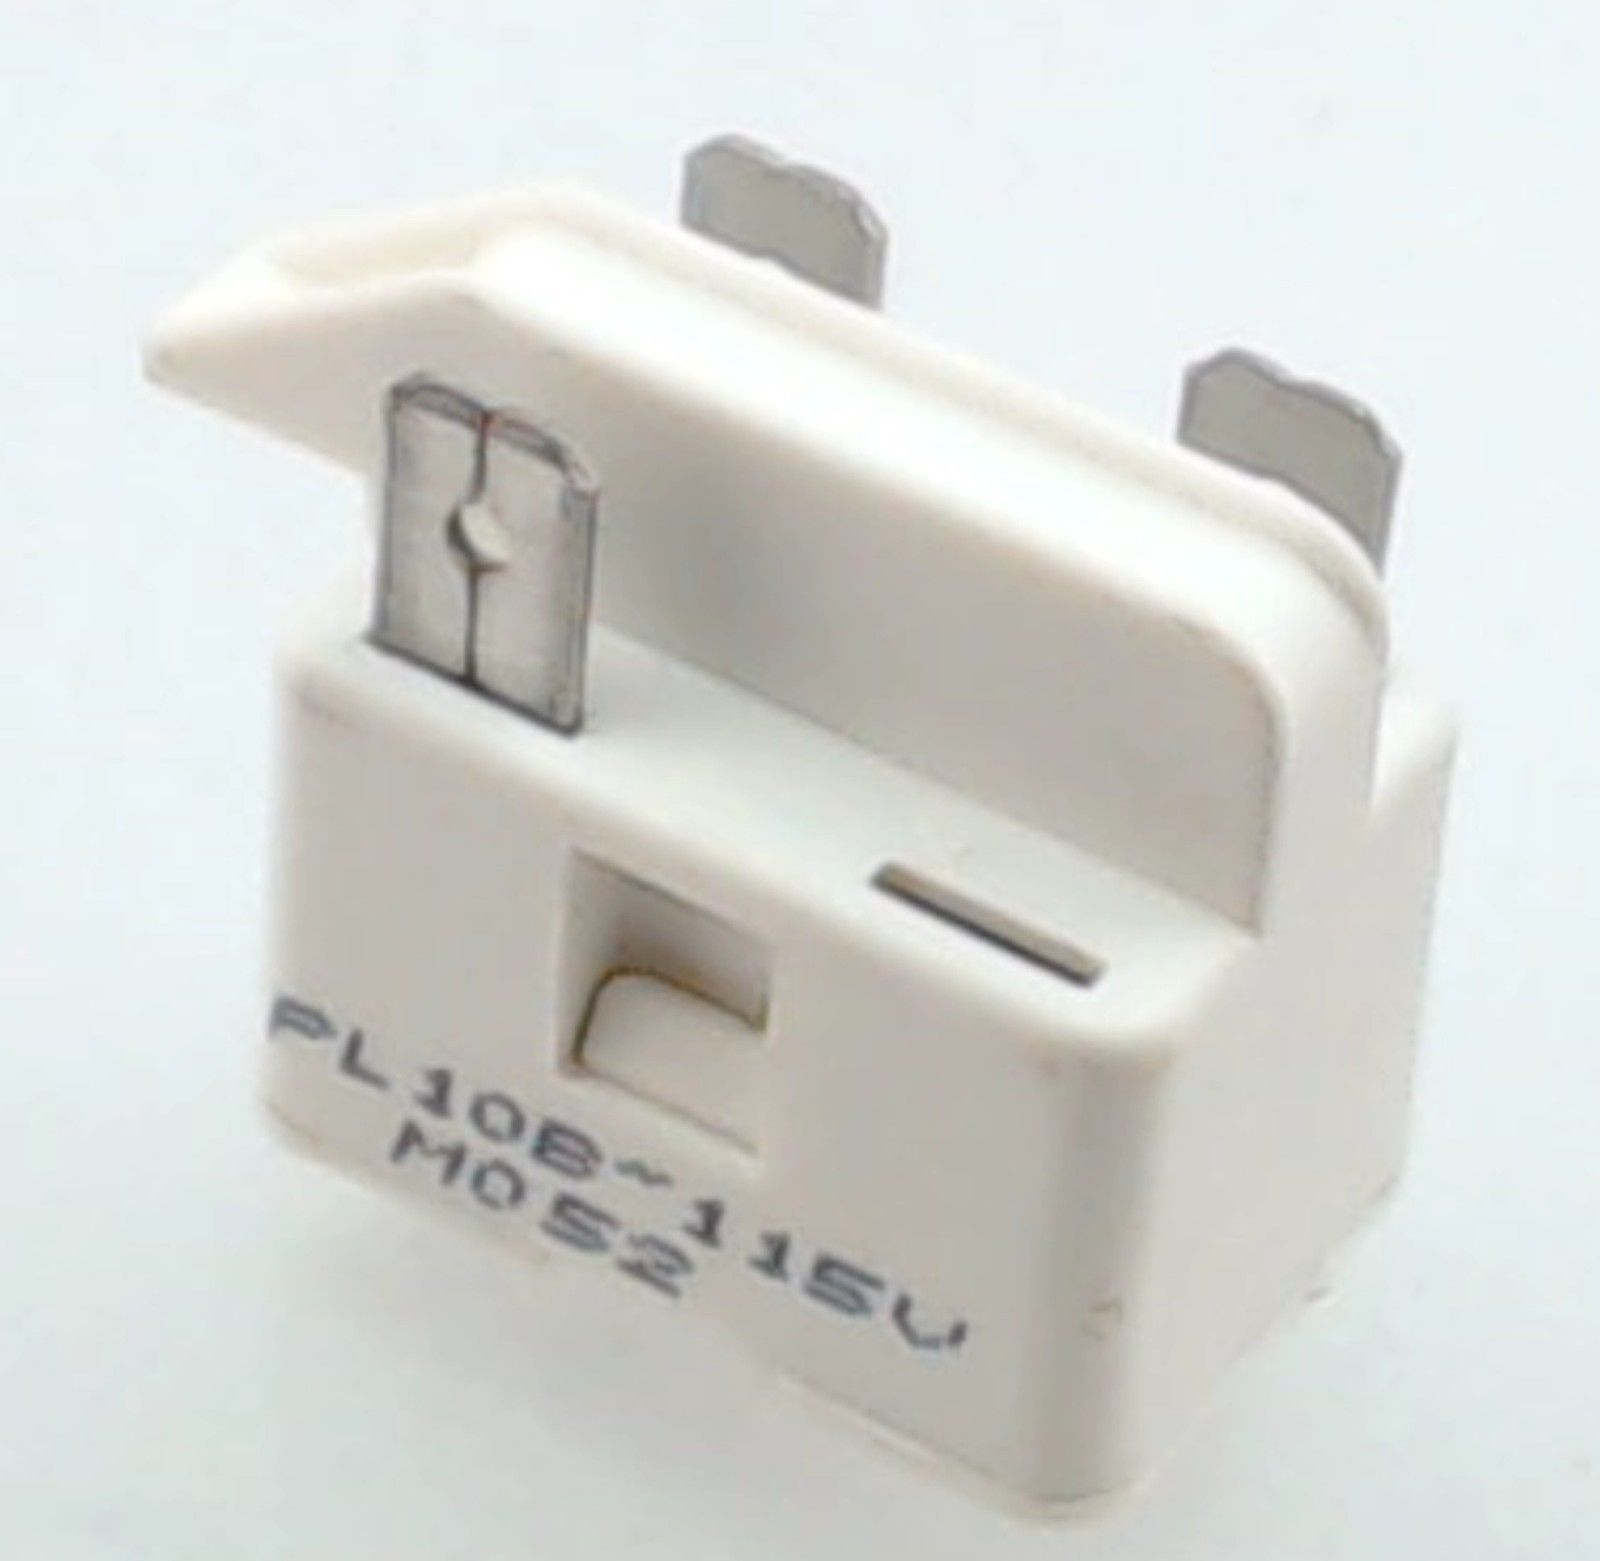 4357156, Refrigerator Compressor Relay fits Roper, Kenmore, Whirlpool